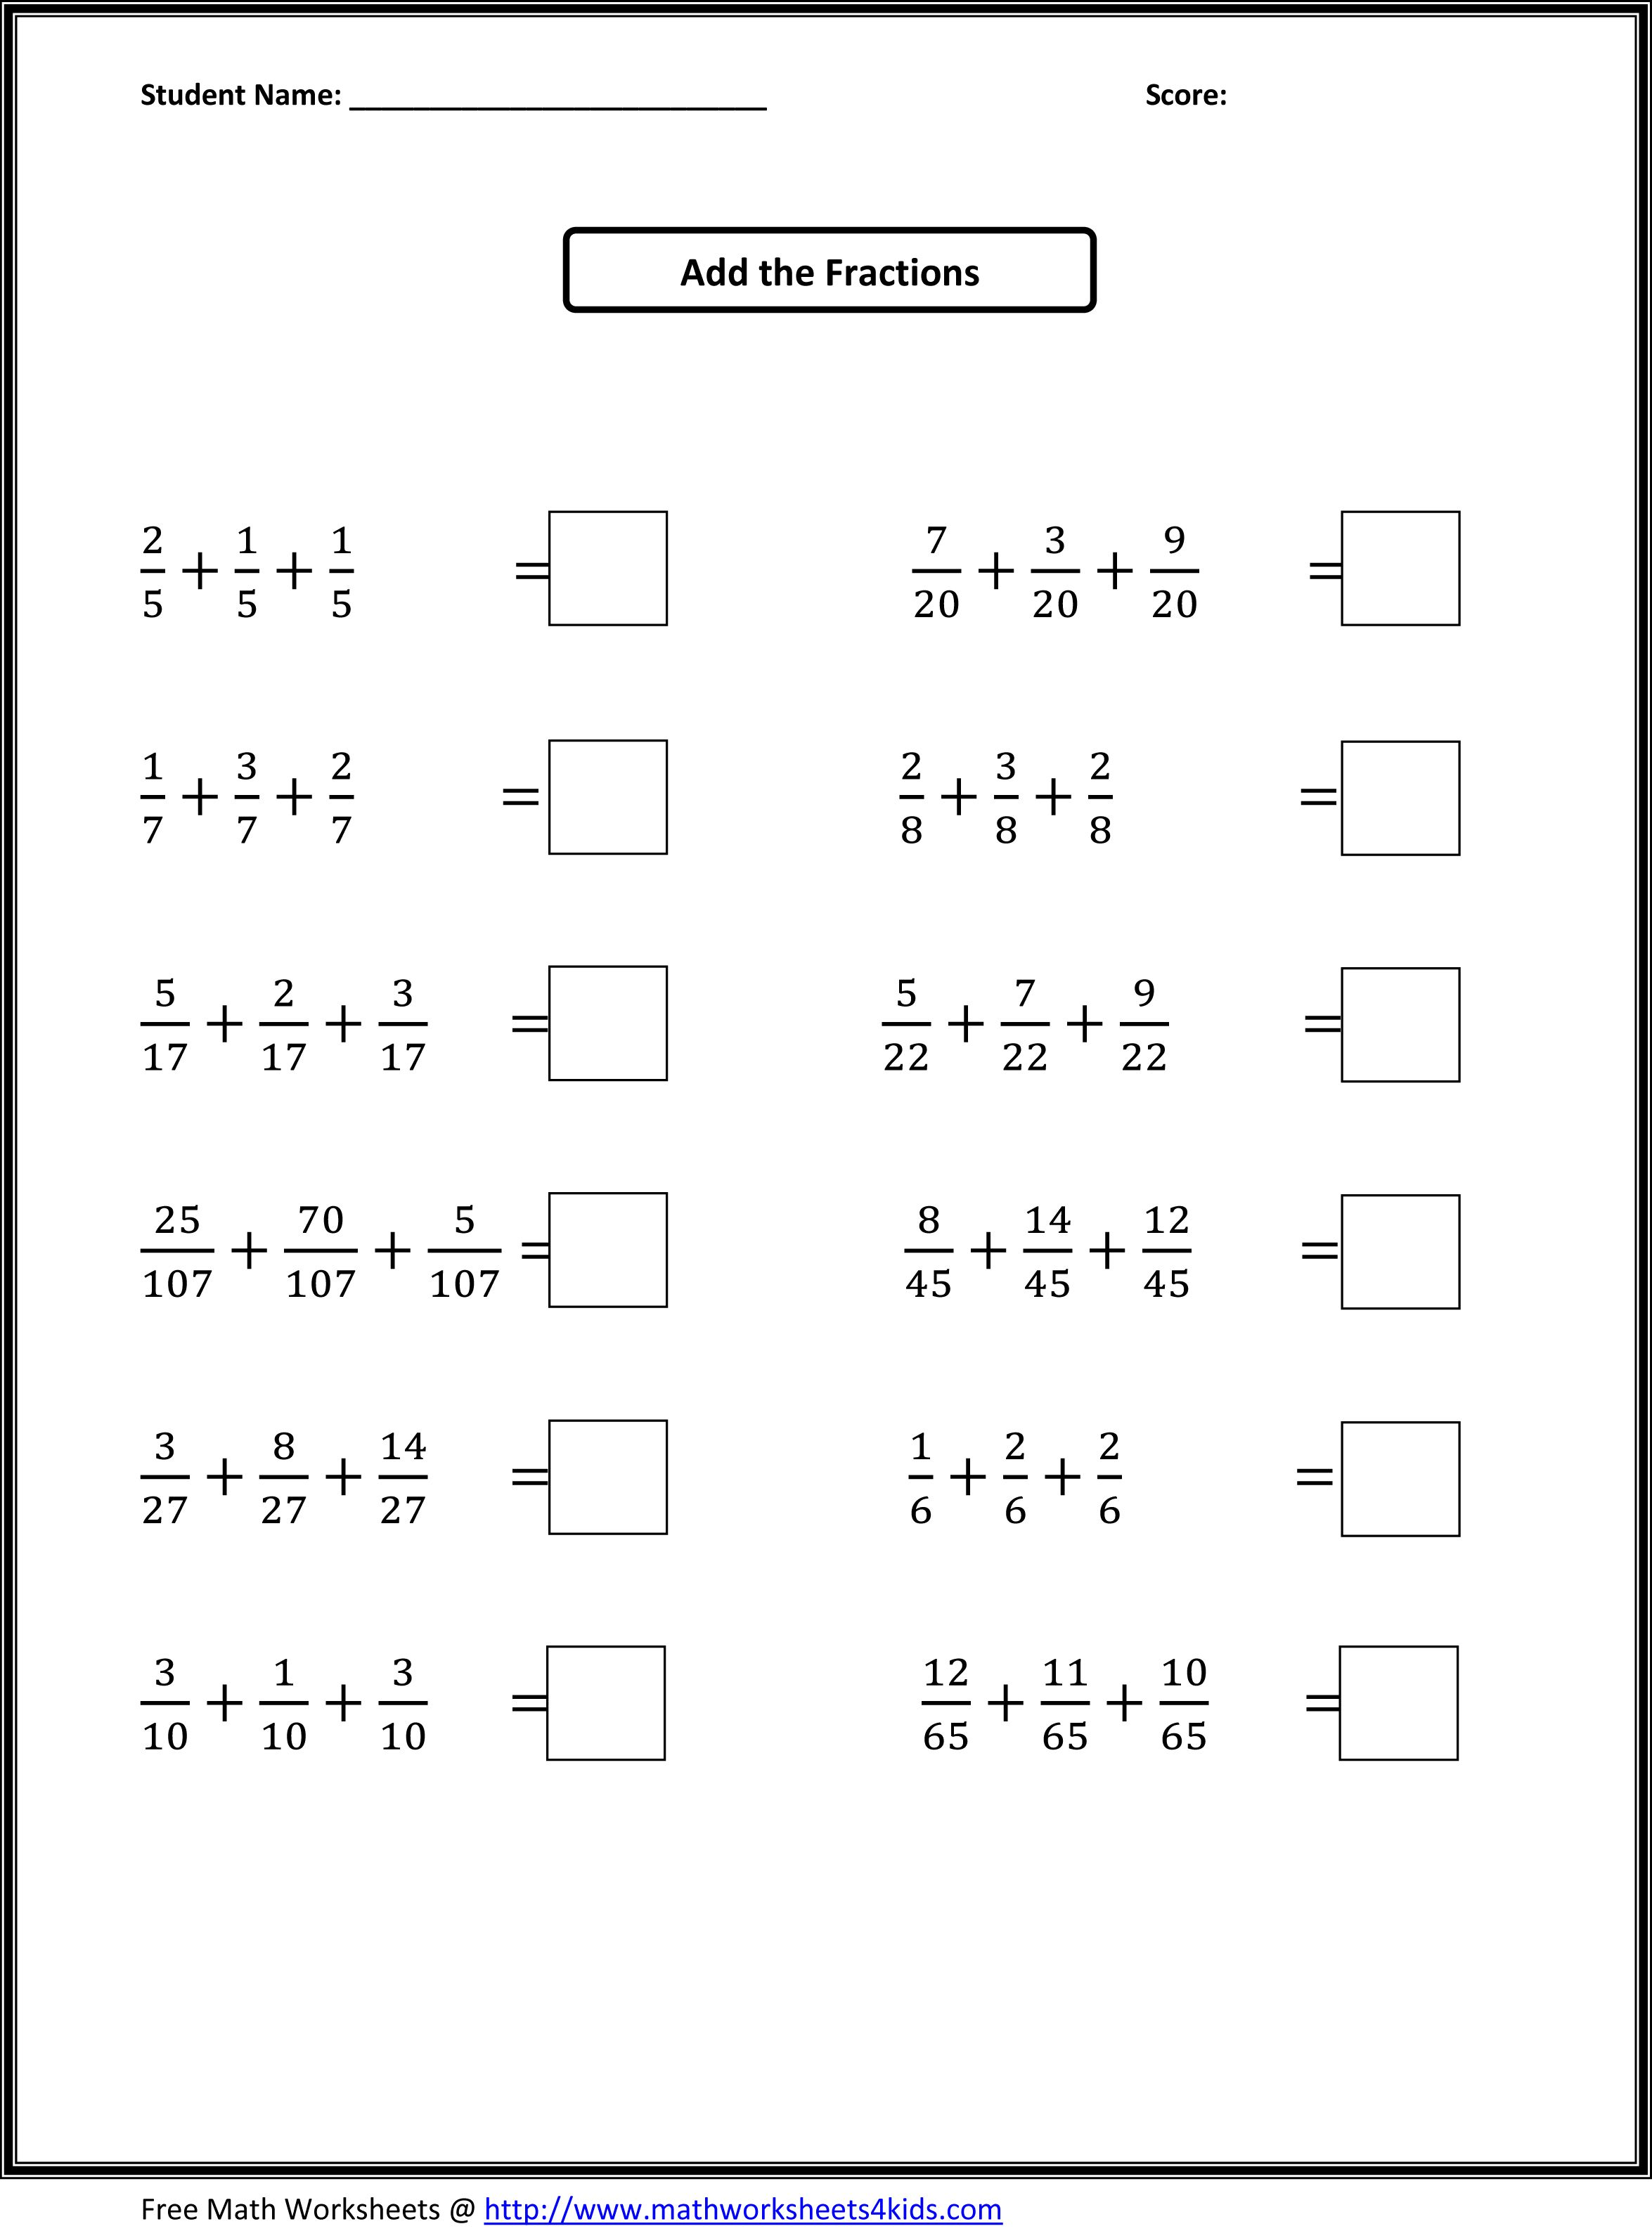 Worksheets Math Fourth Grade Worksheets printable worksheets by grade level and skill teaching ideas high quality equivalent fractions for photos